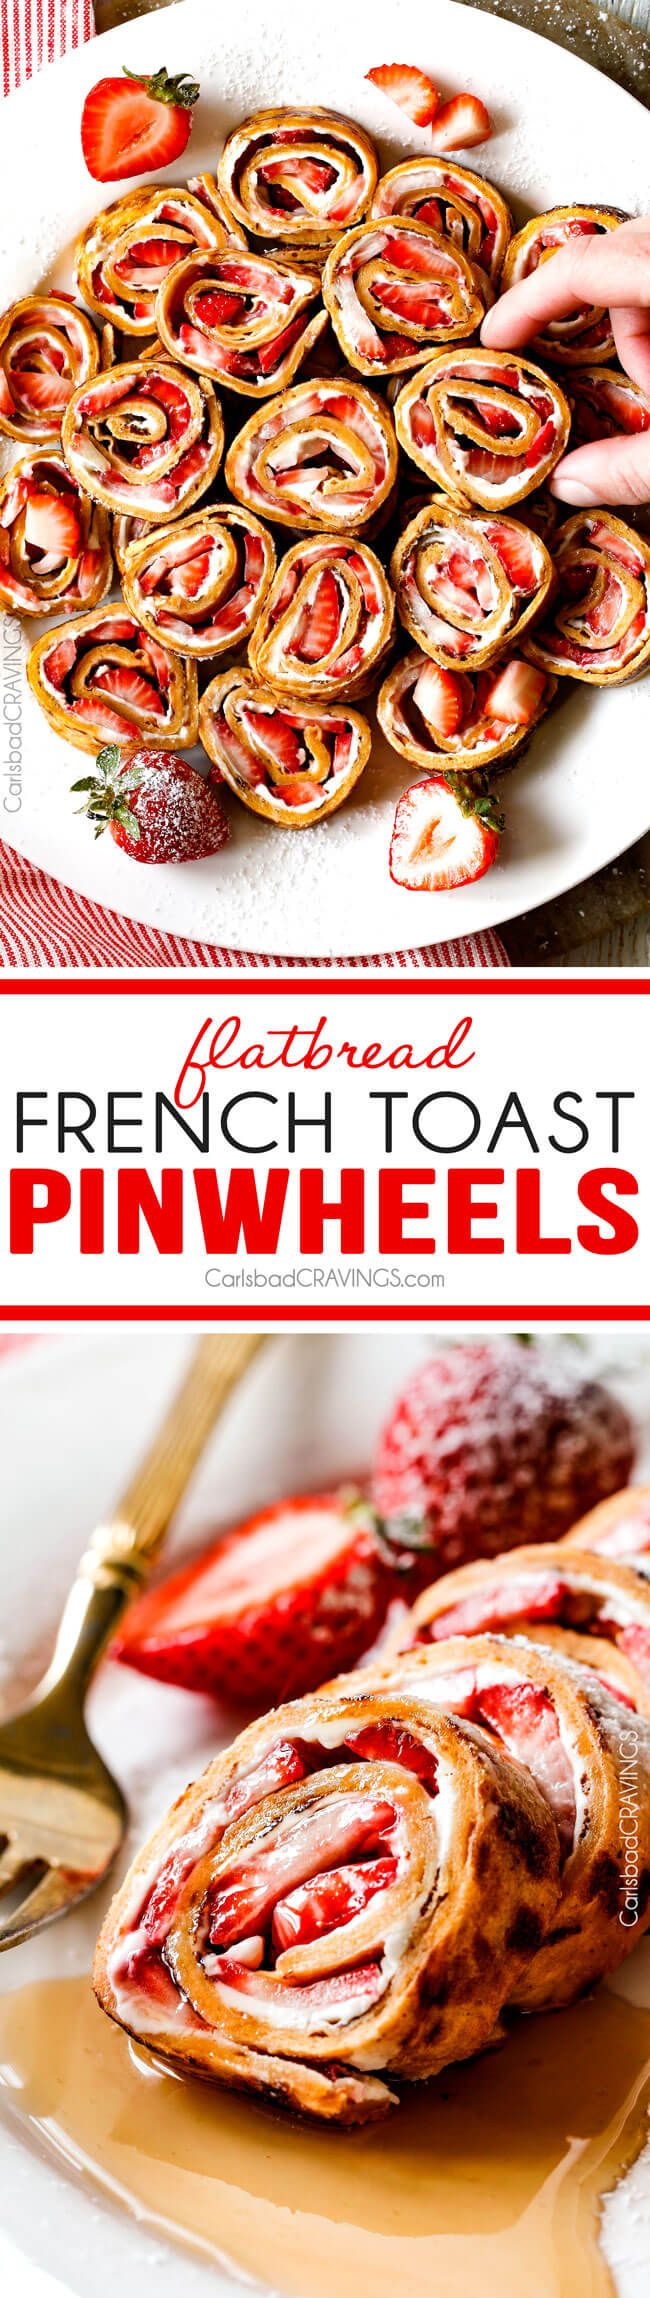 These French Toast Pinwheels or Roll UPs are the cutest, tastiest thing ever and way easier than traditional French Toast roll ups! I made them for a brunch and everyone loved them!